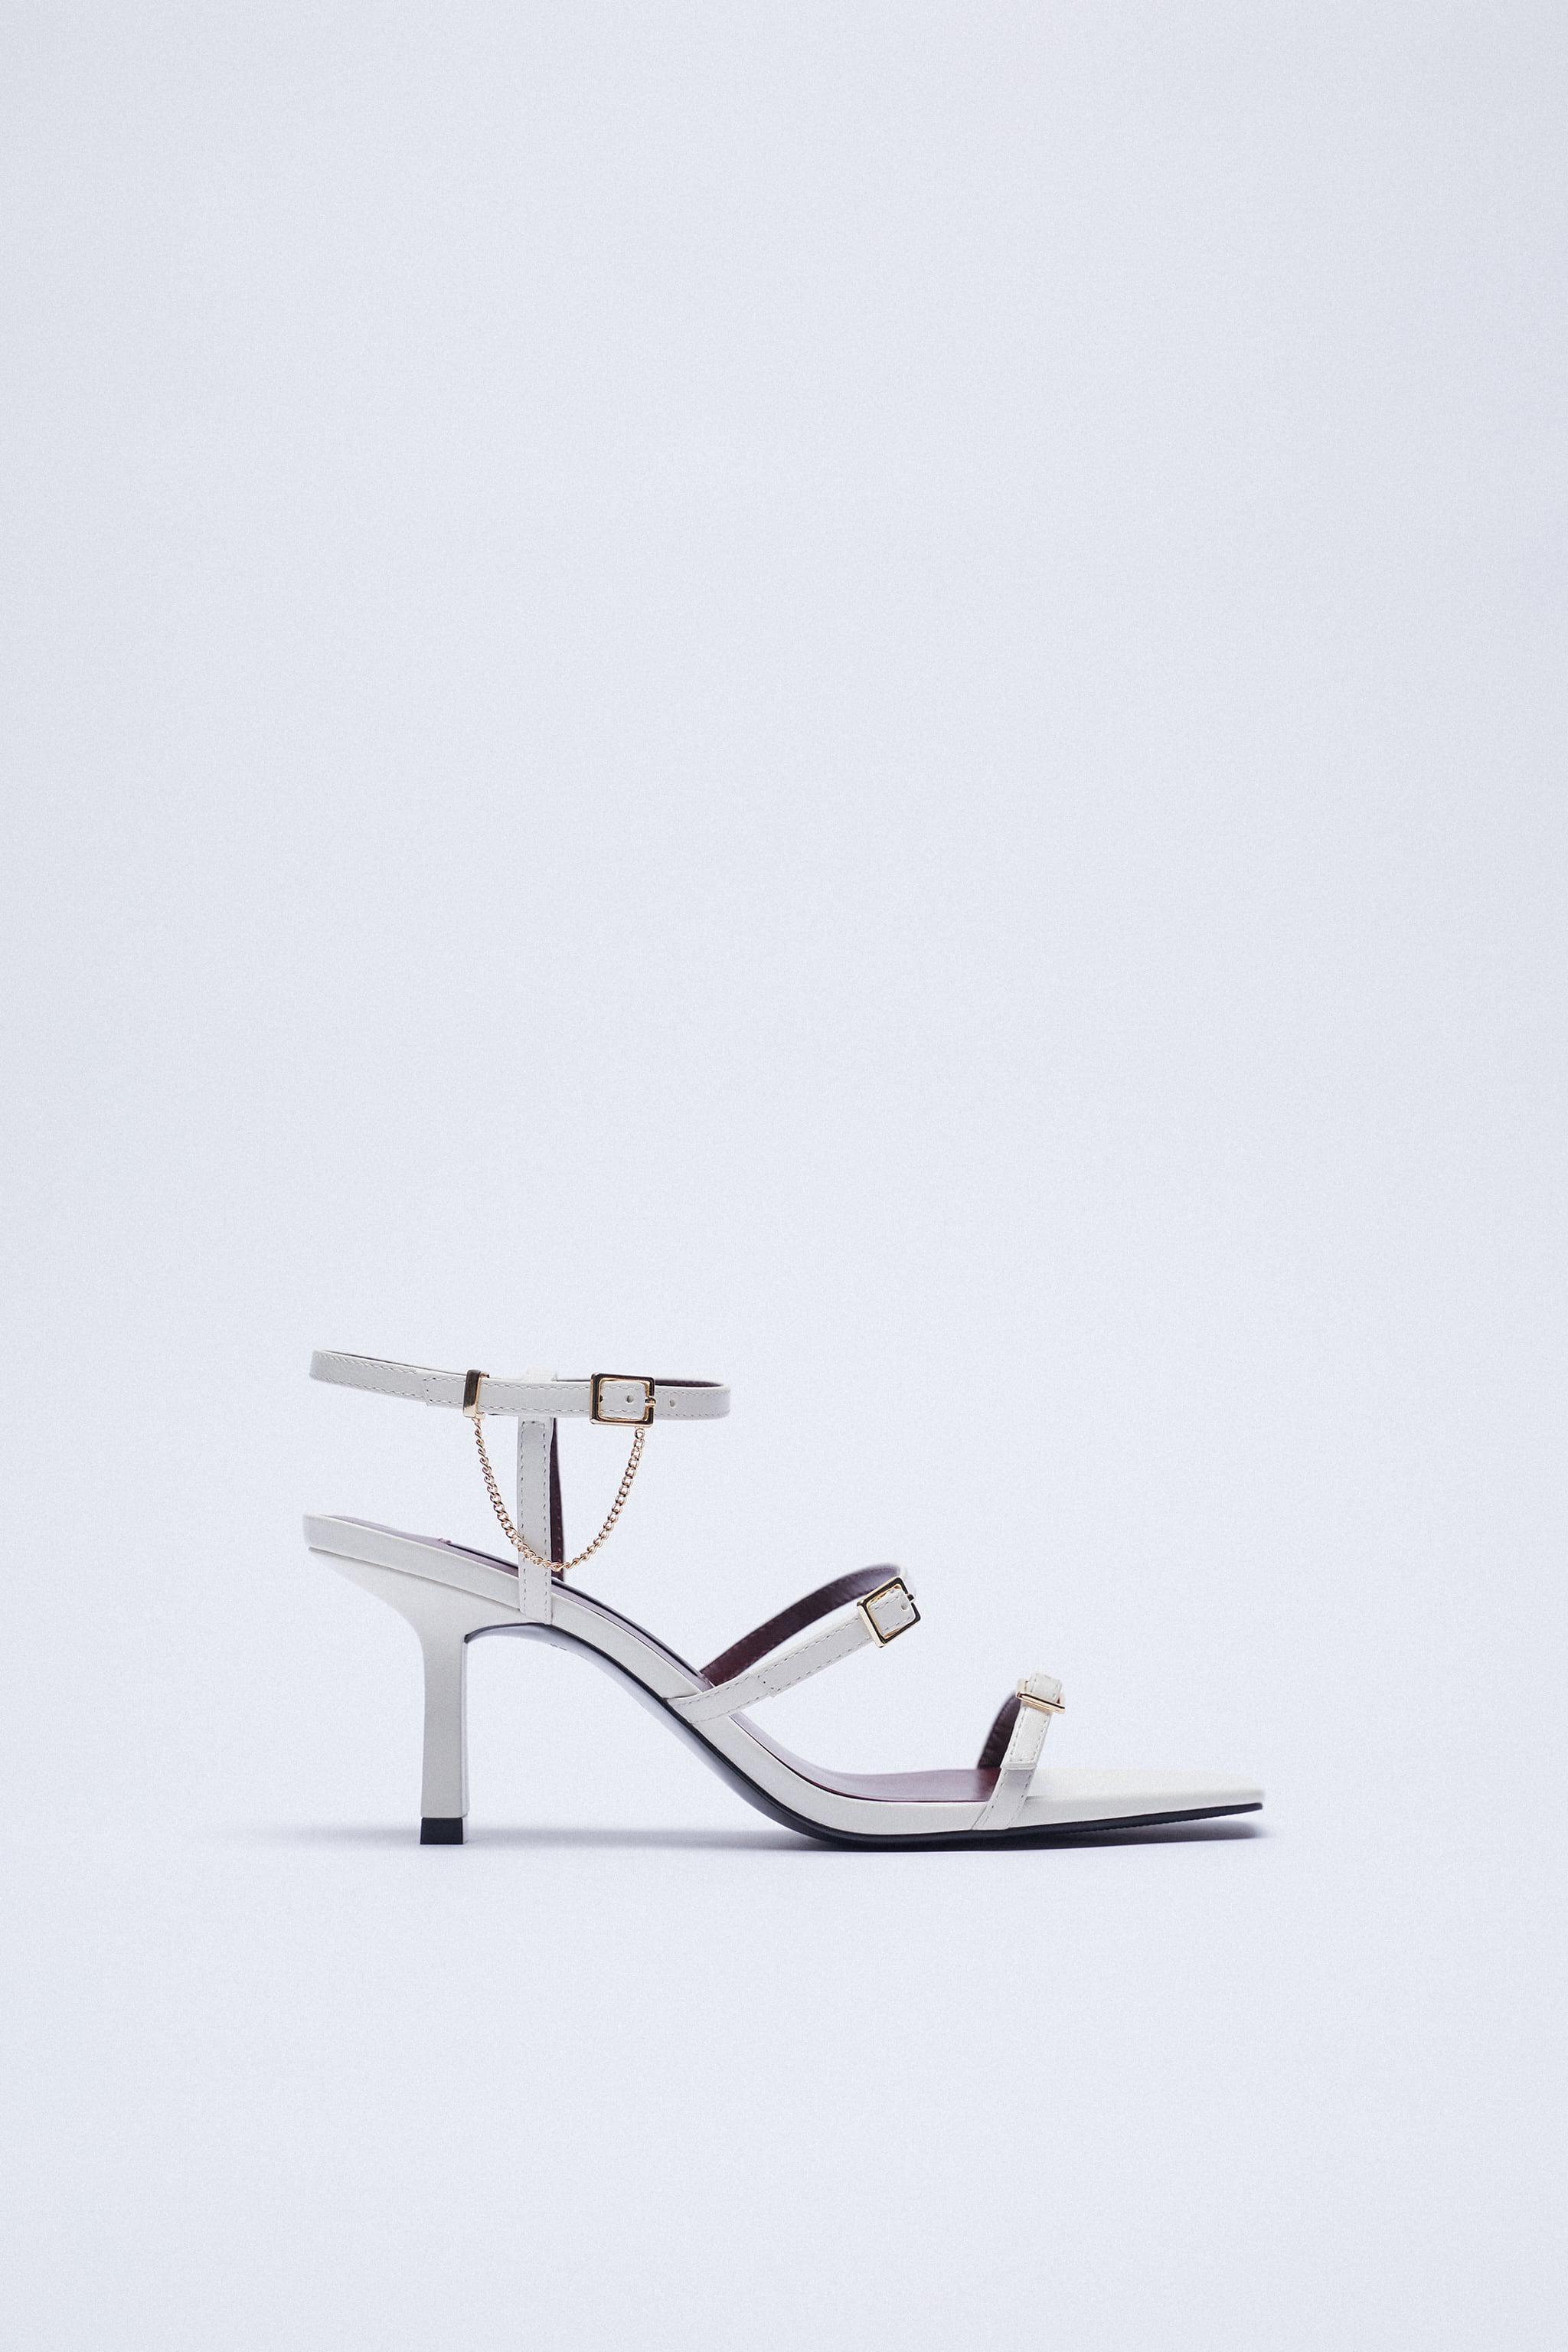 LEATHER HIGH HEEL STRAPPY SANDALS WITH BUCKLES 4